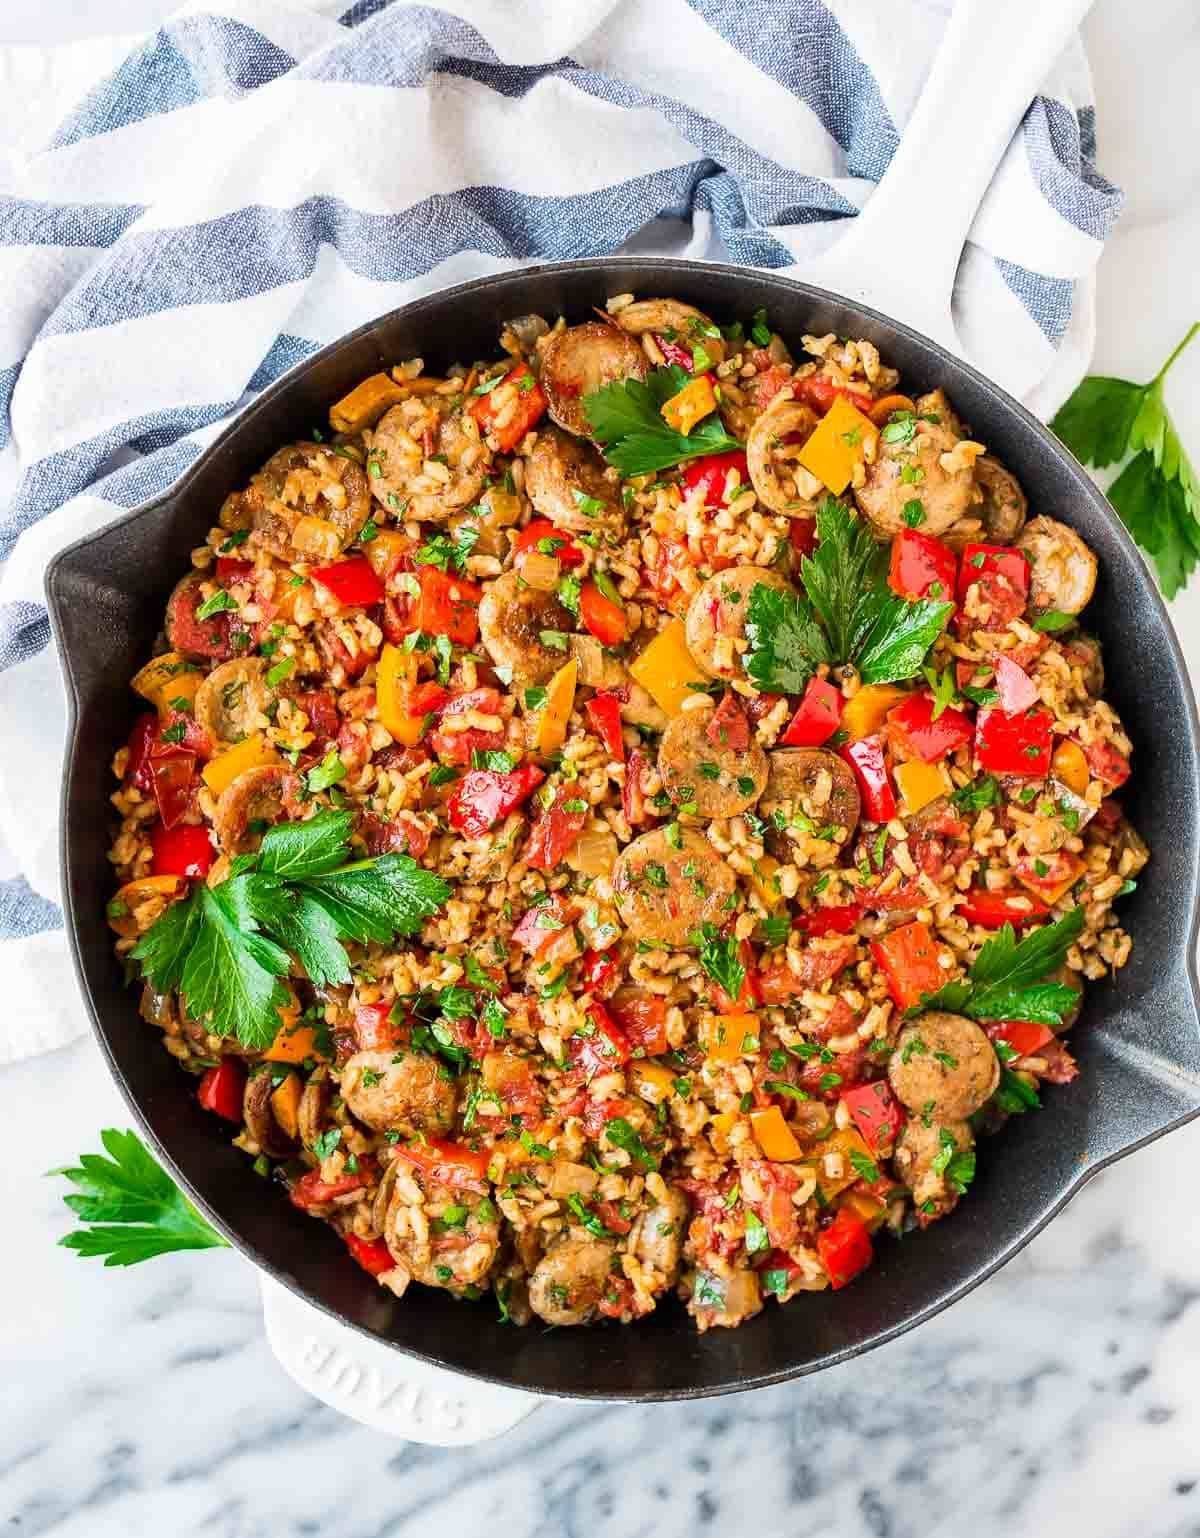 Italian Sausage And Rice Casserole One Pan Meal Wellplated Com